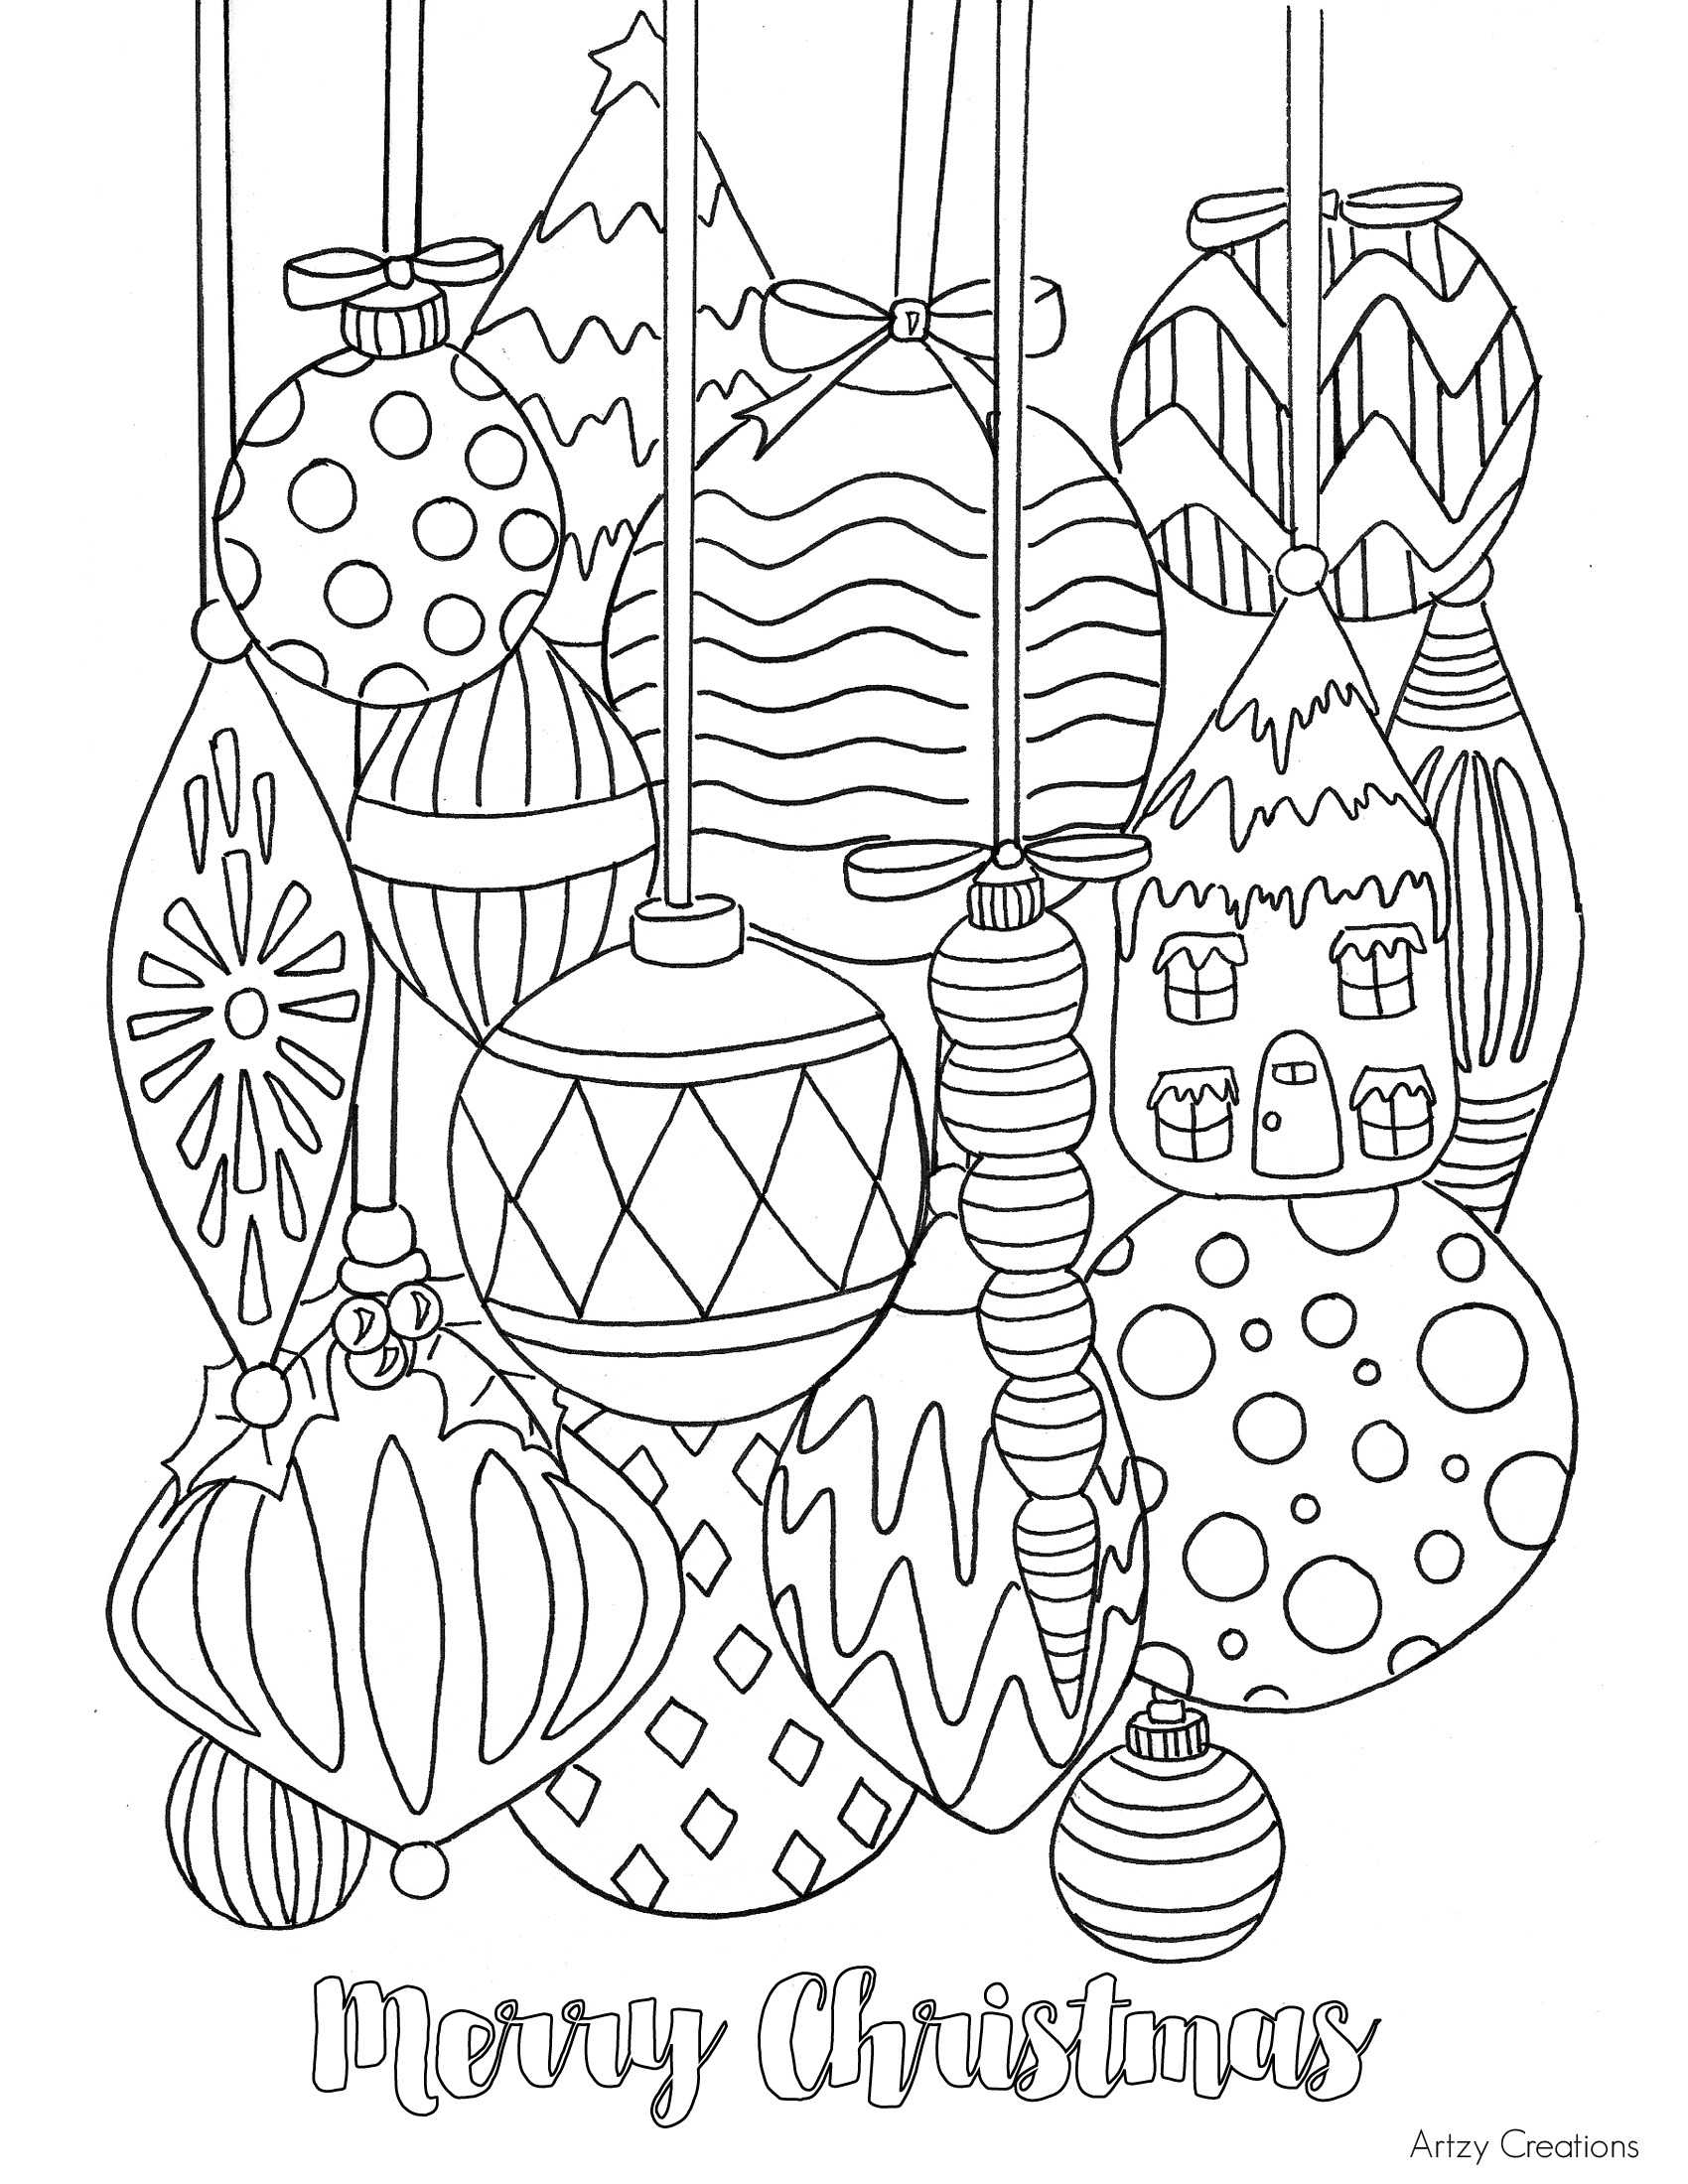 Coloring Worksheets for Preschool as Well as Free Printable Preschool Coloring Pages Elegant Media Cache Ec0